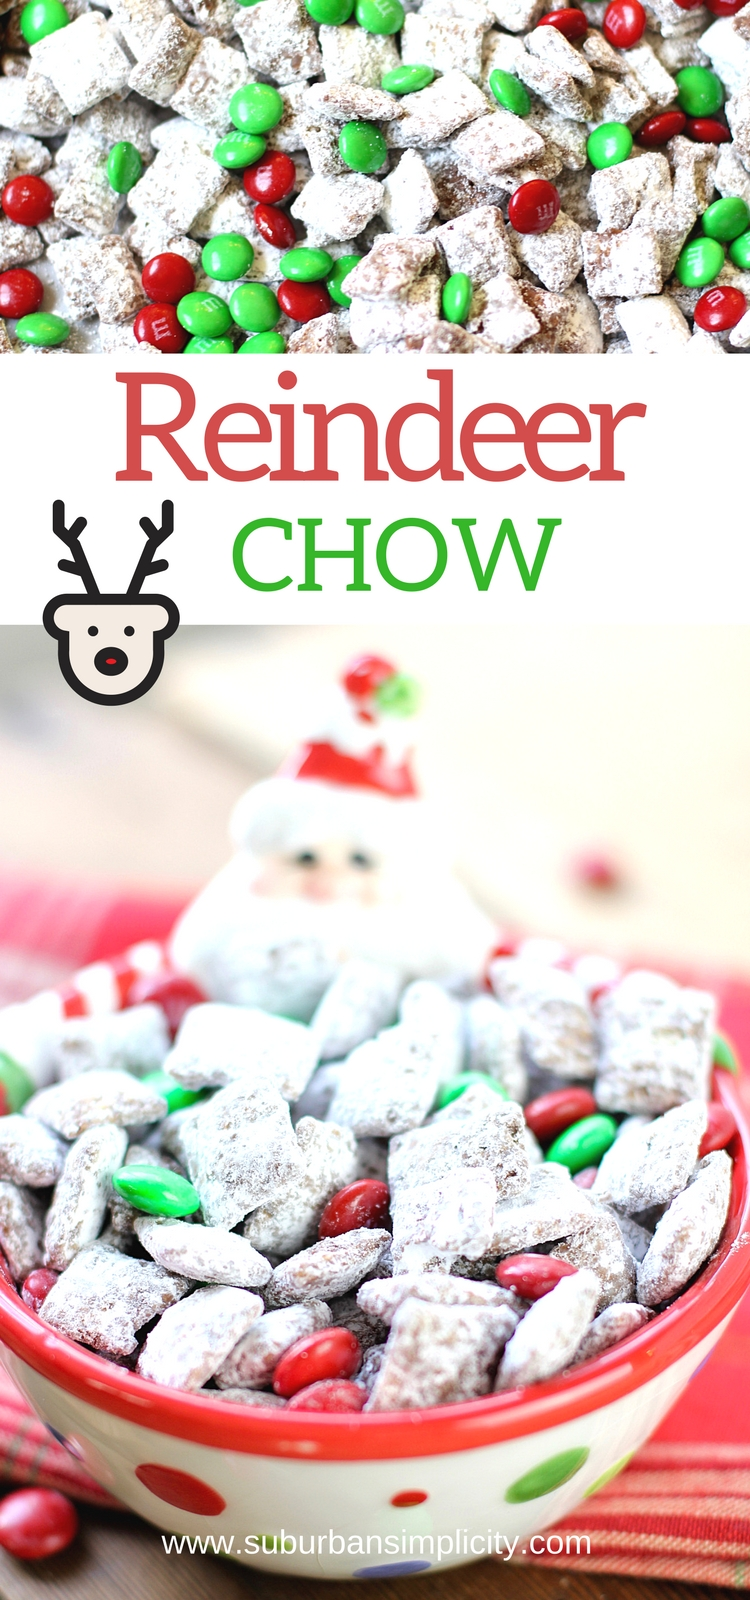 Reindeer Chow Muddy Buddies are the perfect Christmas treat idea!  This easy Christmas Chex Puppy Chow is a must make for your holiday gatherings! The hubby can't keep his hands off this stuff! #Christmas #dessert